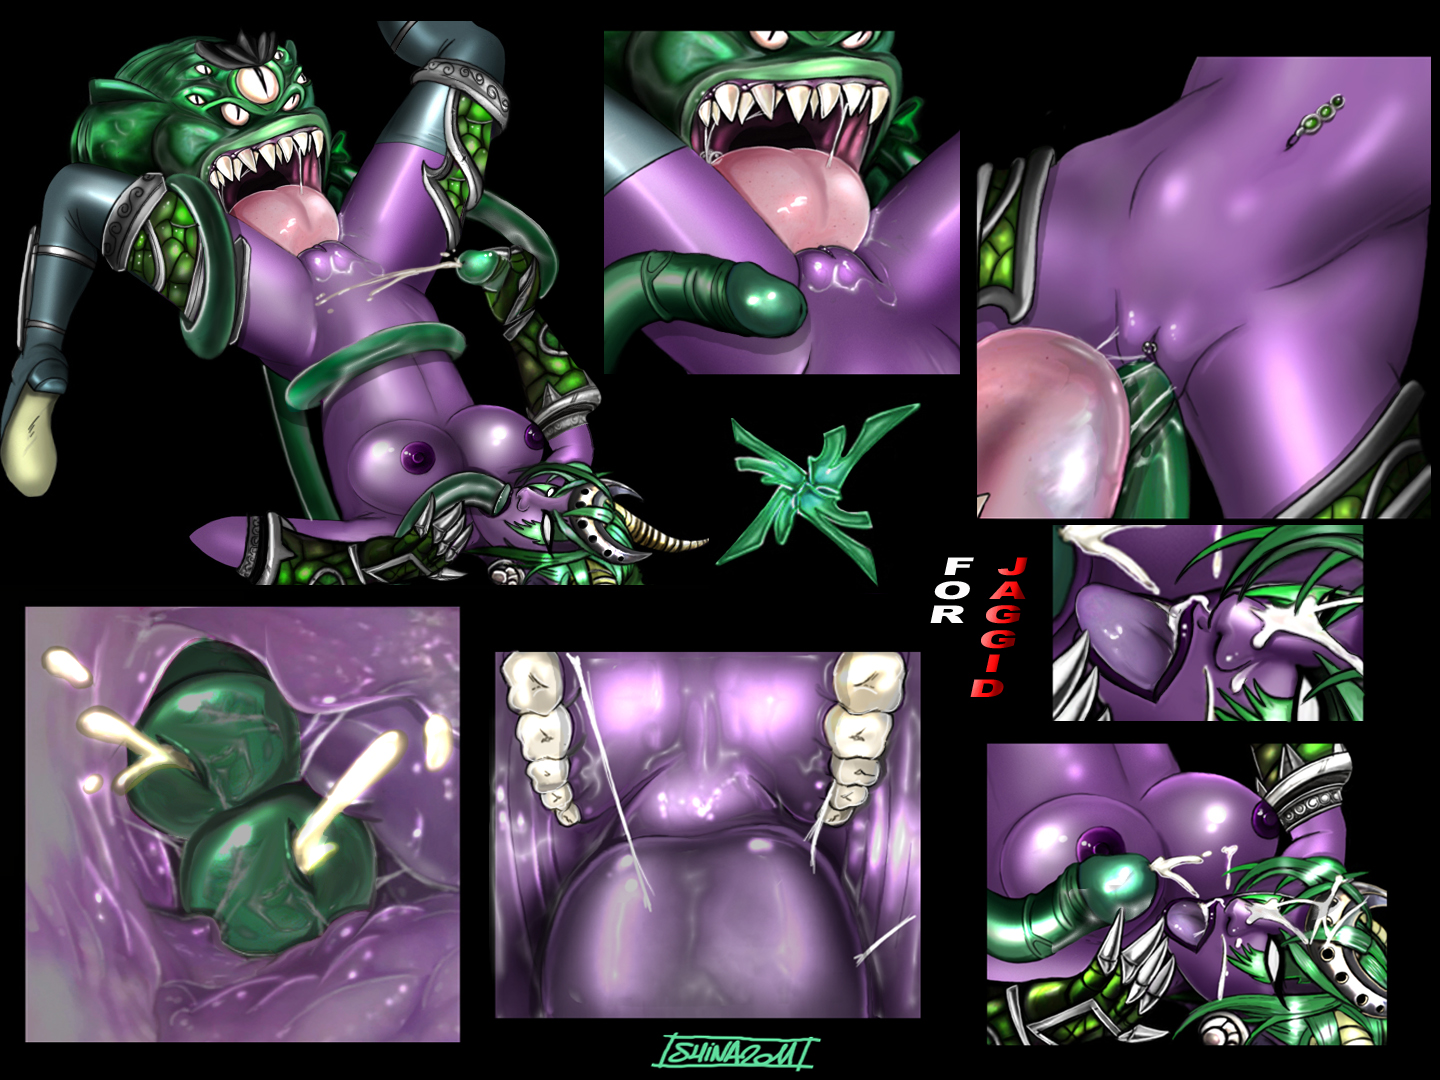 World of warcraft porn drawings sexy photo